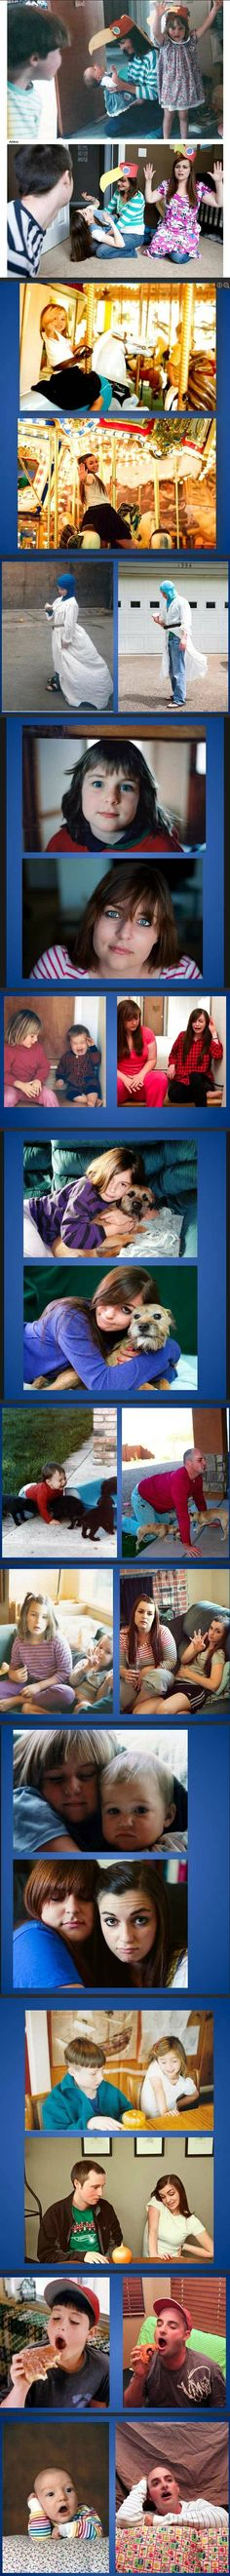 We recreated our old family photos | Funny Pictures, Quotes, Pics, Photos, Images. Videos of Really Very Cute animals.